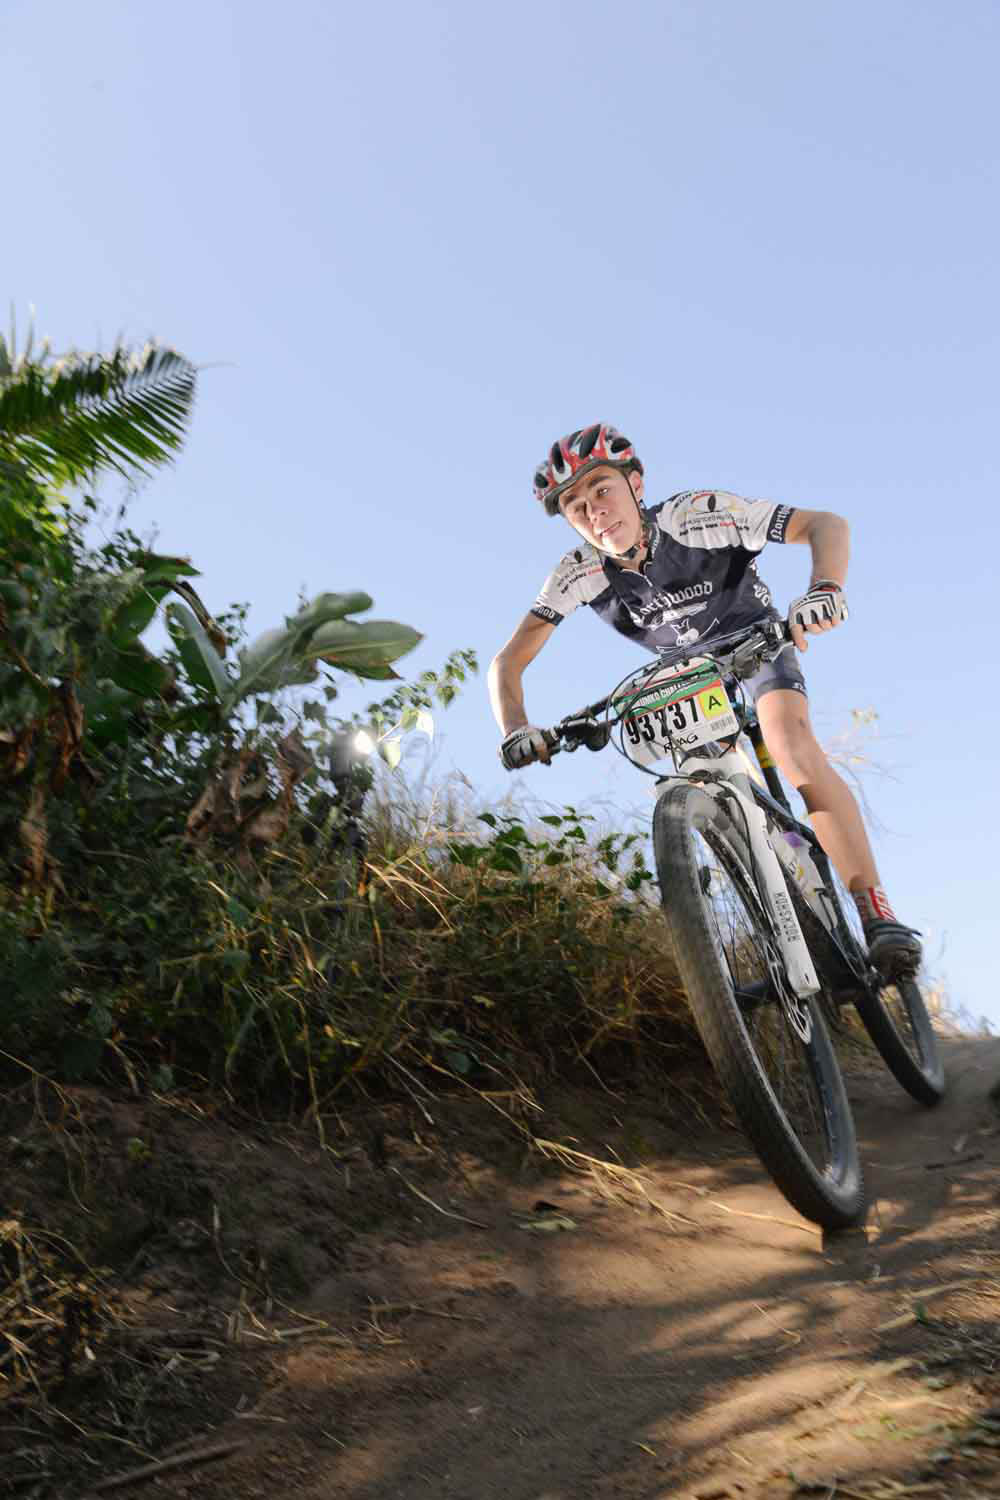 With the addition of some exciting new sections to the routes for this year's event, the Bestmed Ballito Expedition promises to keep families entertained and serious mountain bikers on the edge of their seats come November 14.